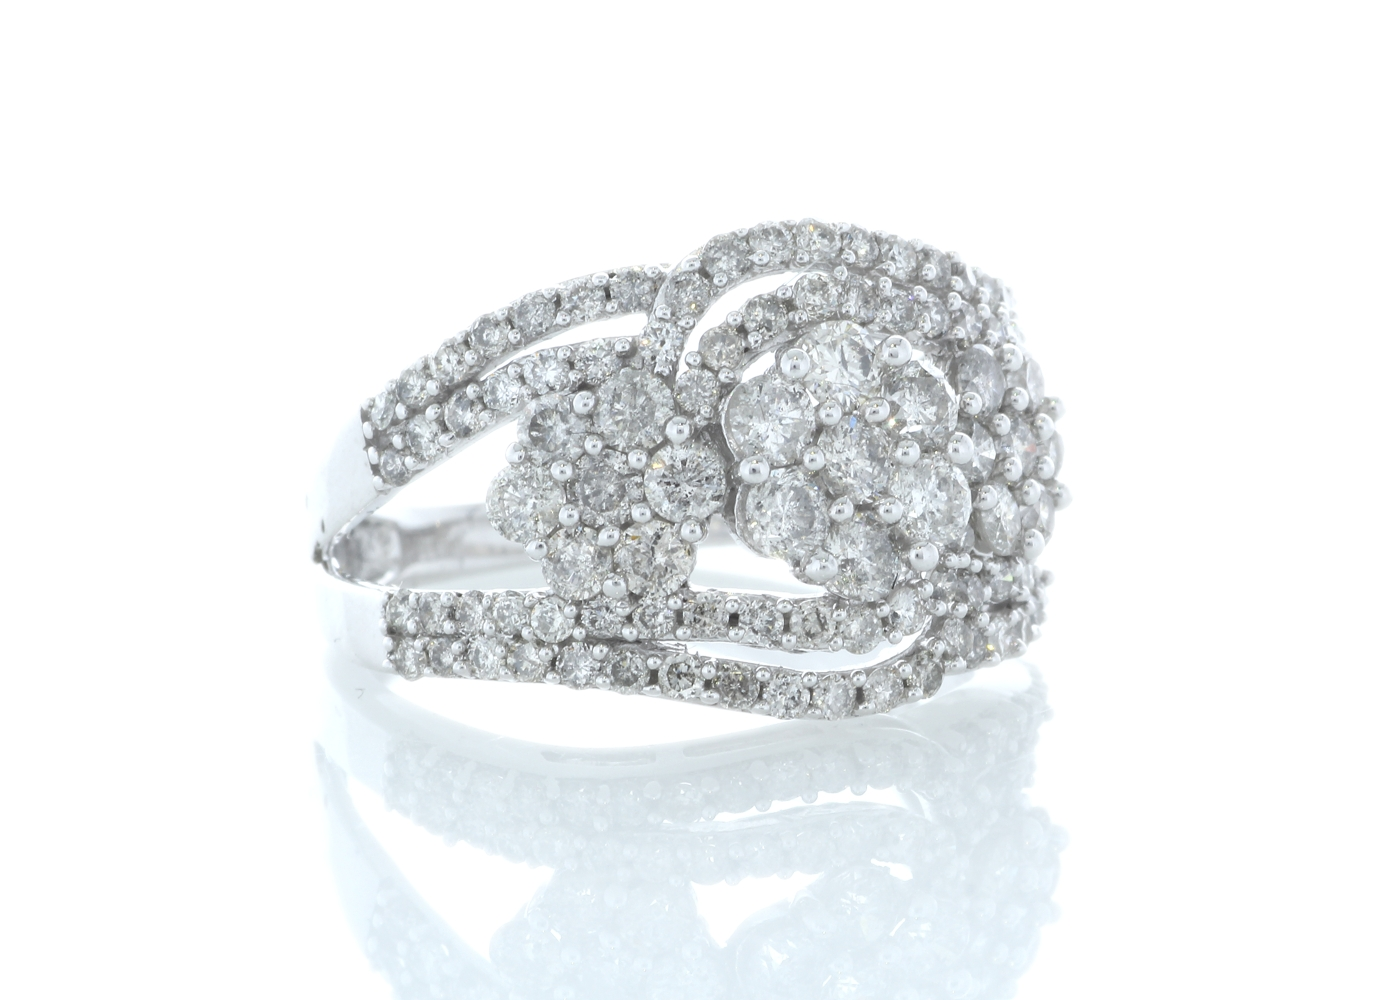 14ct Gold Flower Cluster Diamond Ring 2.00ct Carats - Image 4 of 5